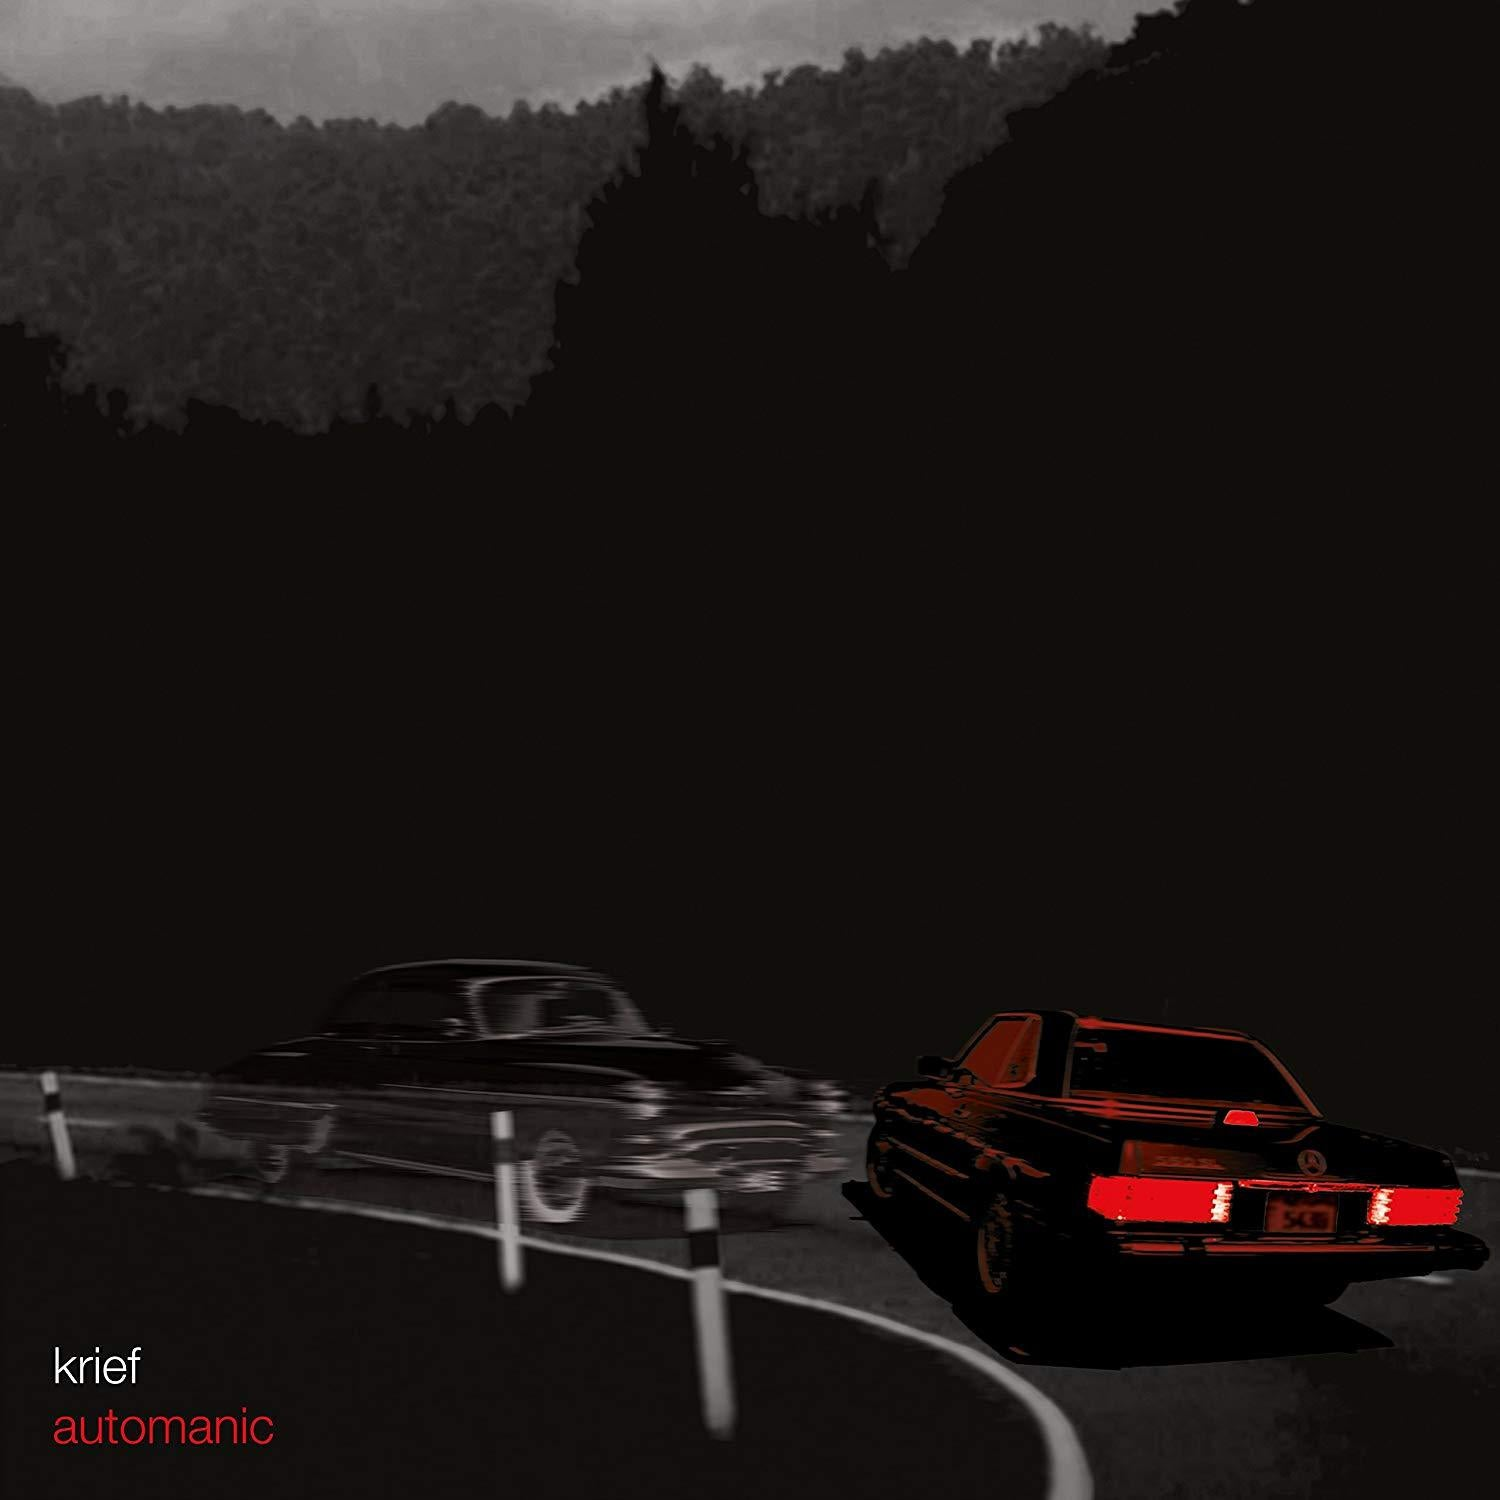 automanic [Audio CD] Krief